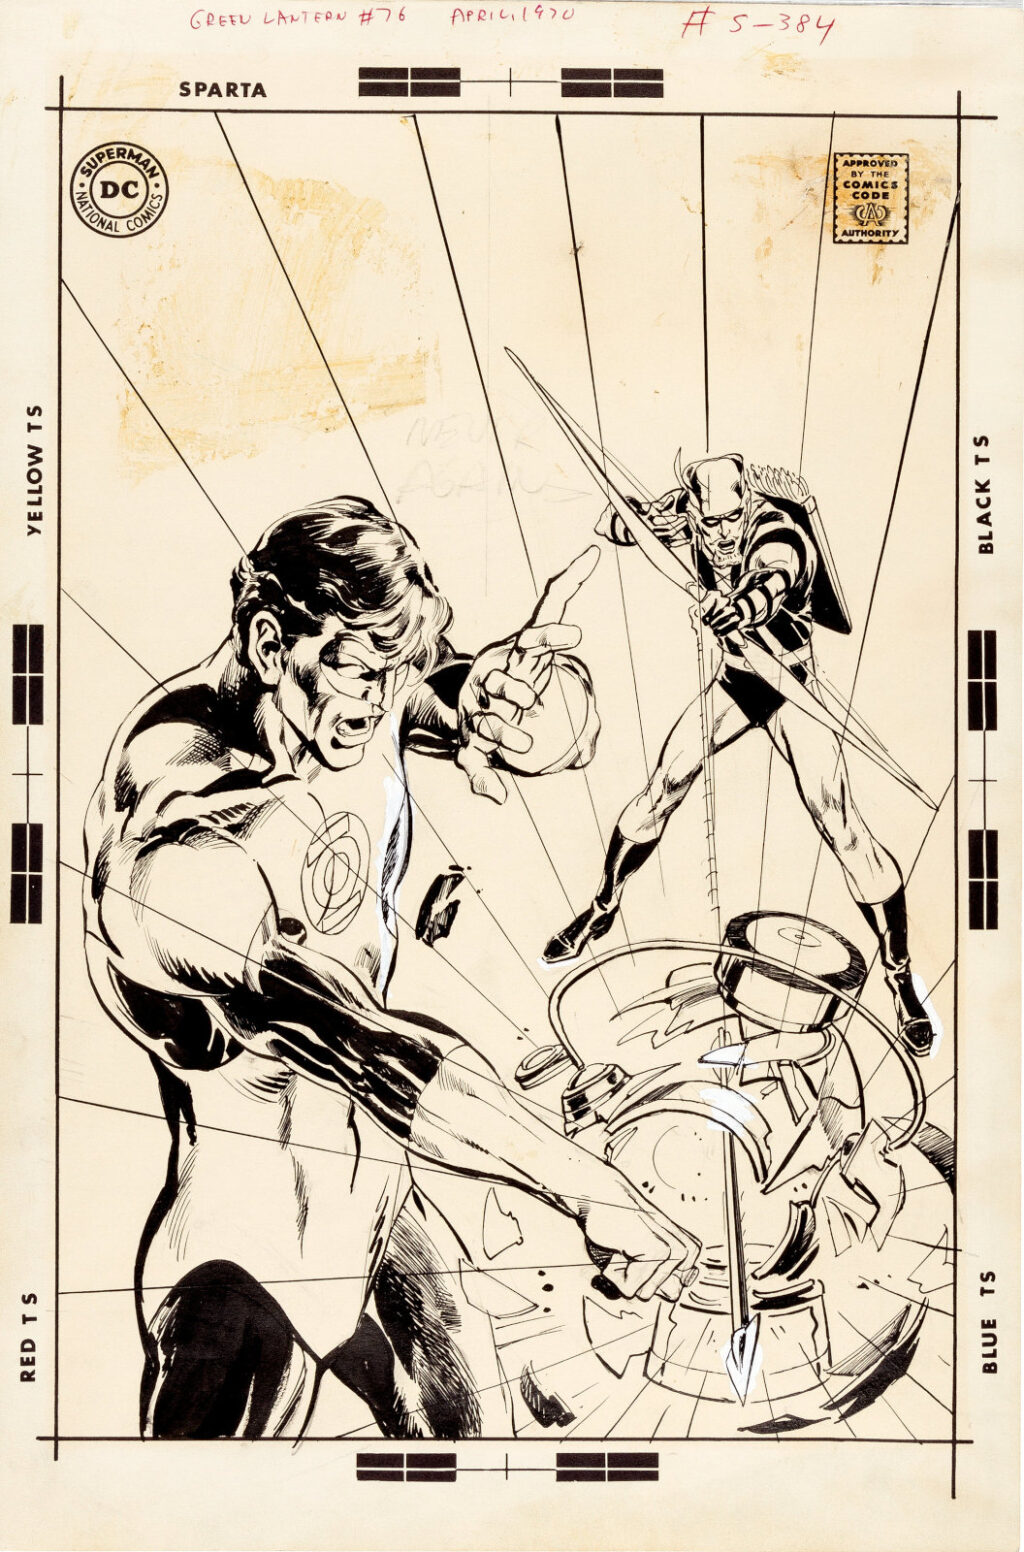 Green Lantern issue 76 cover by Neal Adams